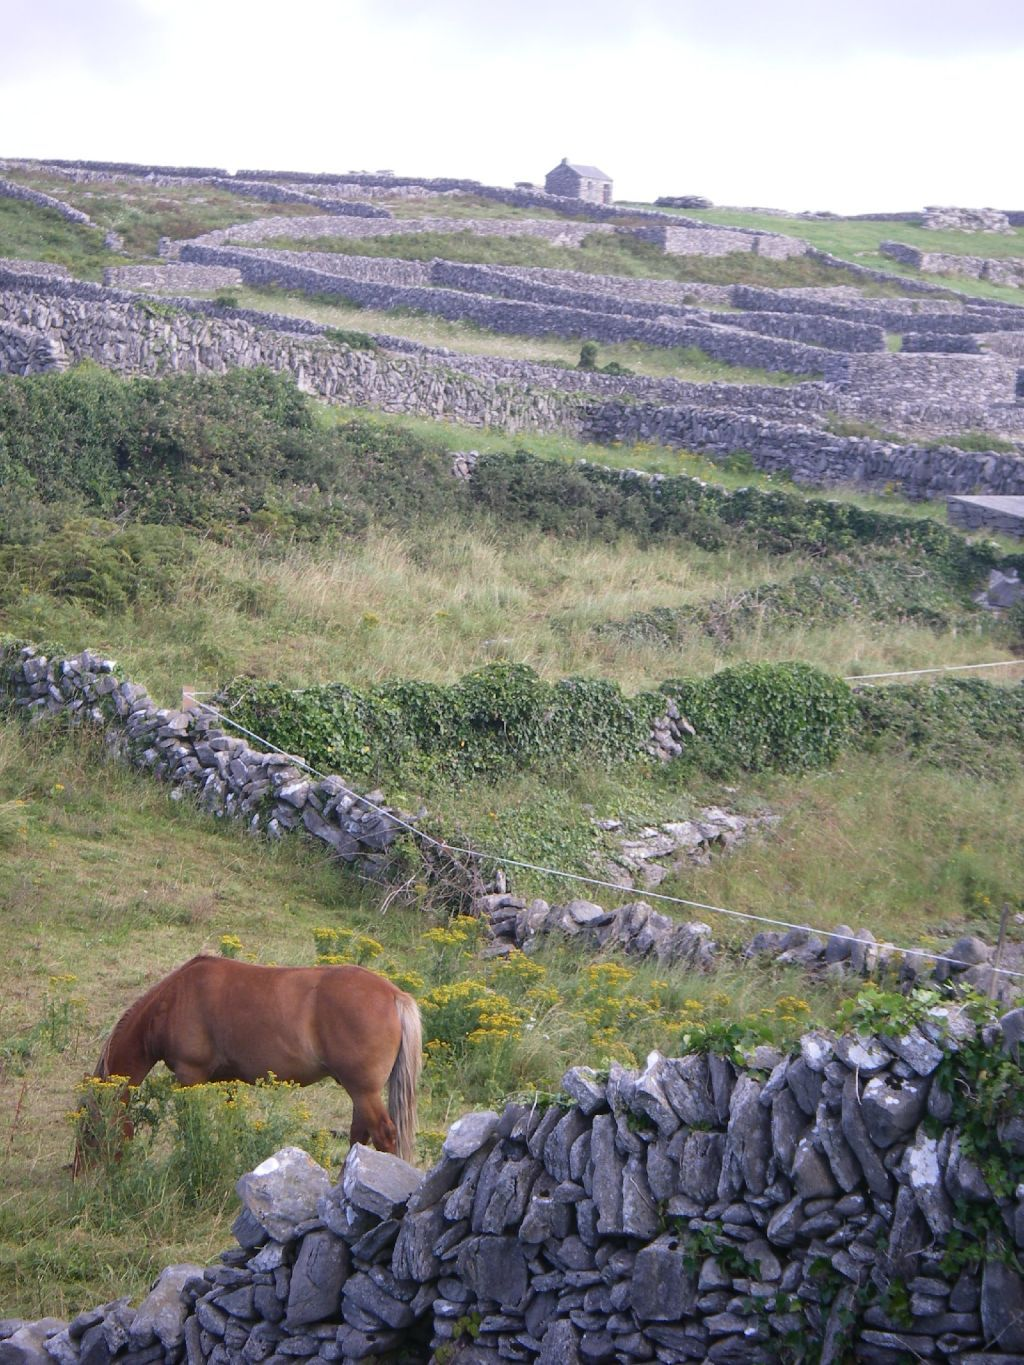 Inisheer, Aran islands, Ireland https://www.facebook.com/IrelandOfAThousandWelcomes?hc_location=timeline